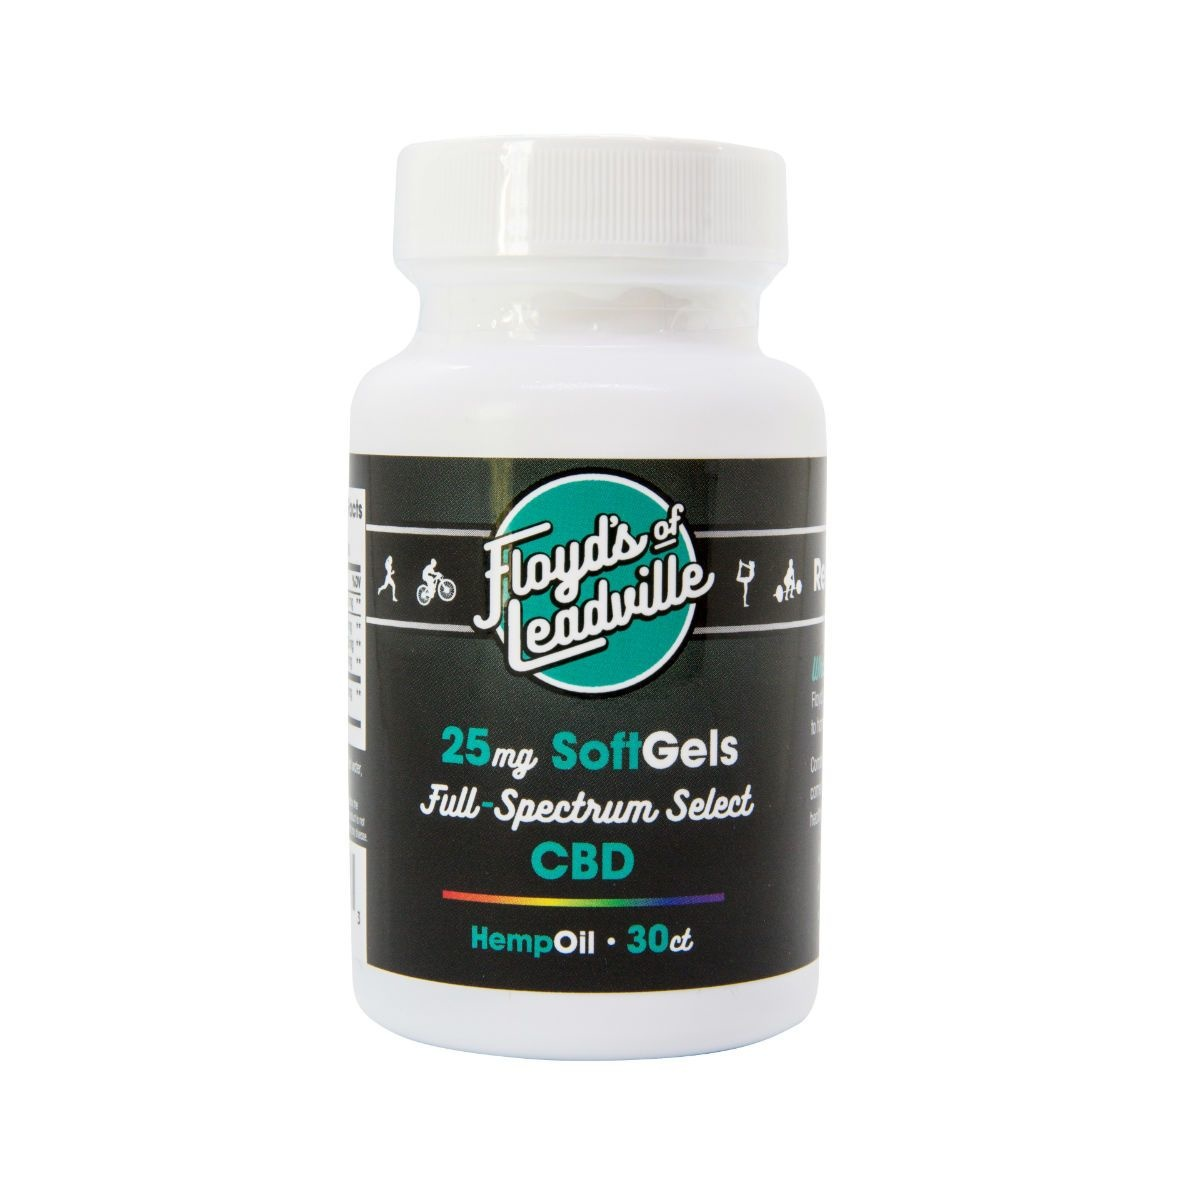 Floyds Of Leadville CBD Hemp Oil 30/Capsules 25mg